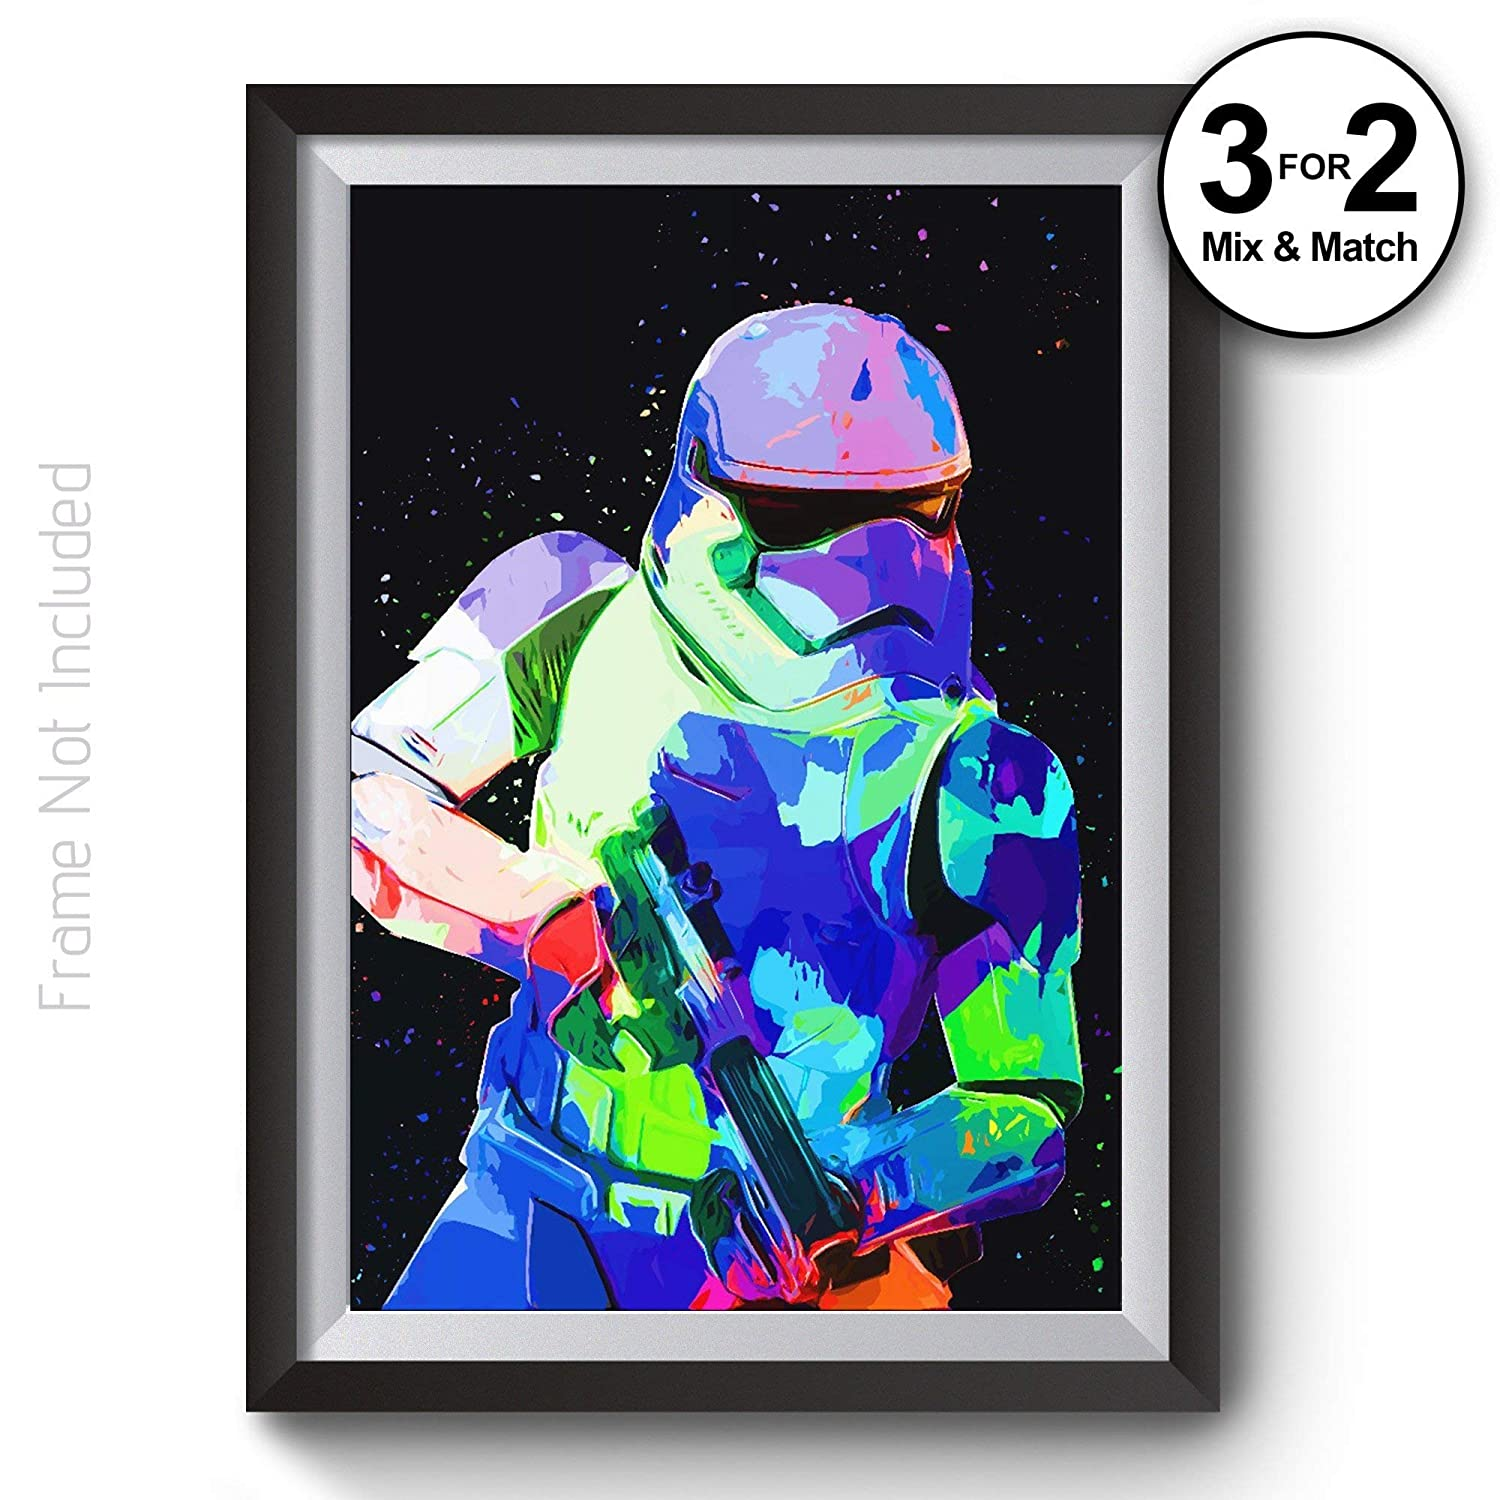 Stormtrooper Poster Movie Posters in Giclee Quality Abstract Star Wars Wall Art Print